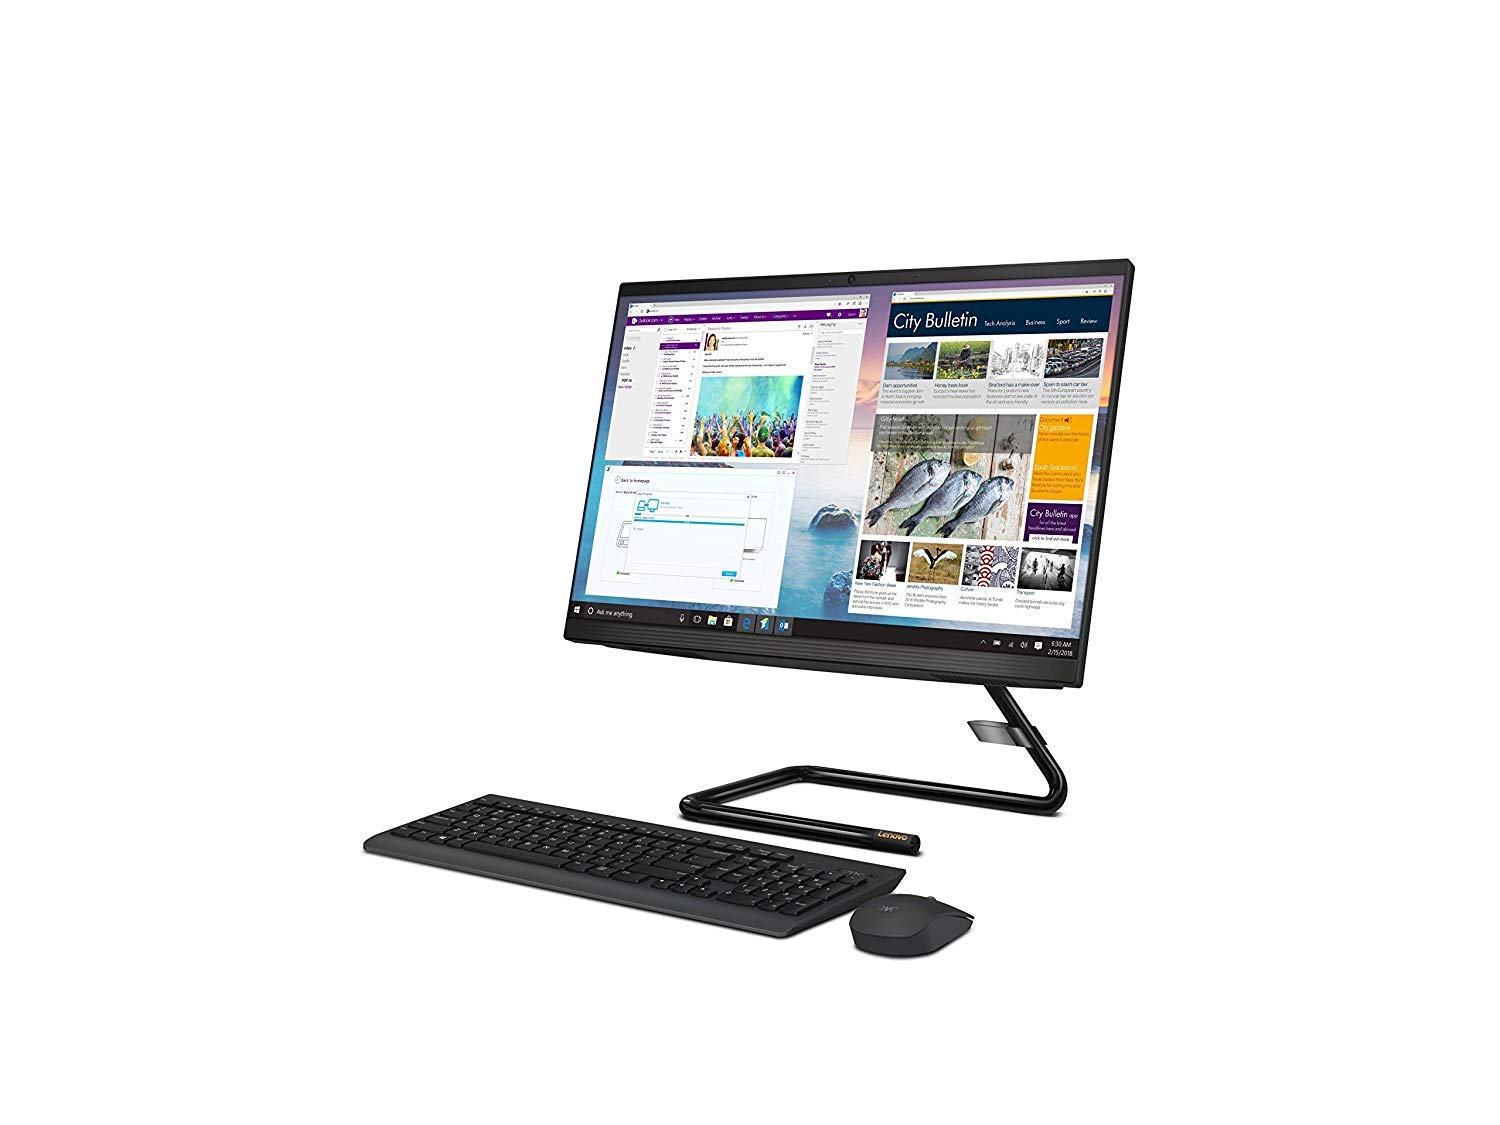 Lenovo AIO A340 22IWL F0EB00CQIN 21.5inch FHD IPS Intel 10th Gen Core i3-10110U 8GB DDR4 1TB HDD Win10 Home Black